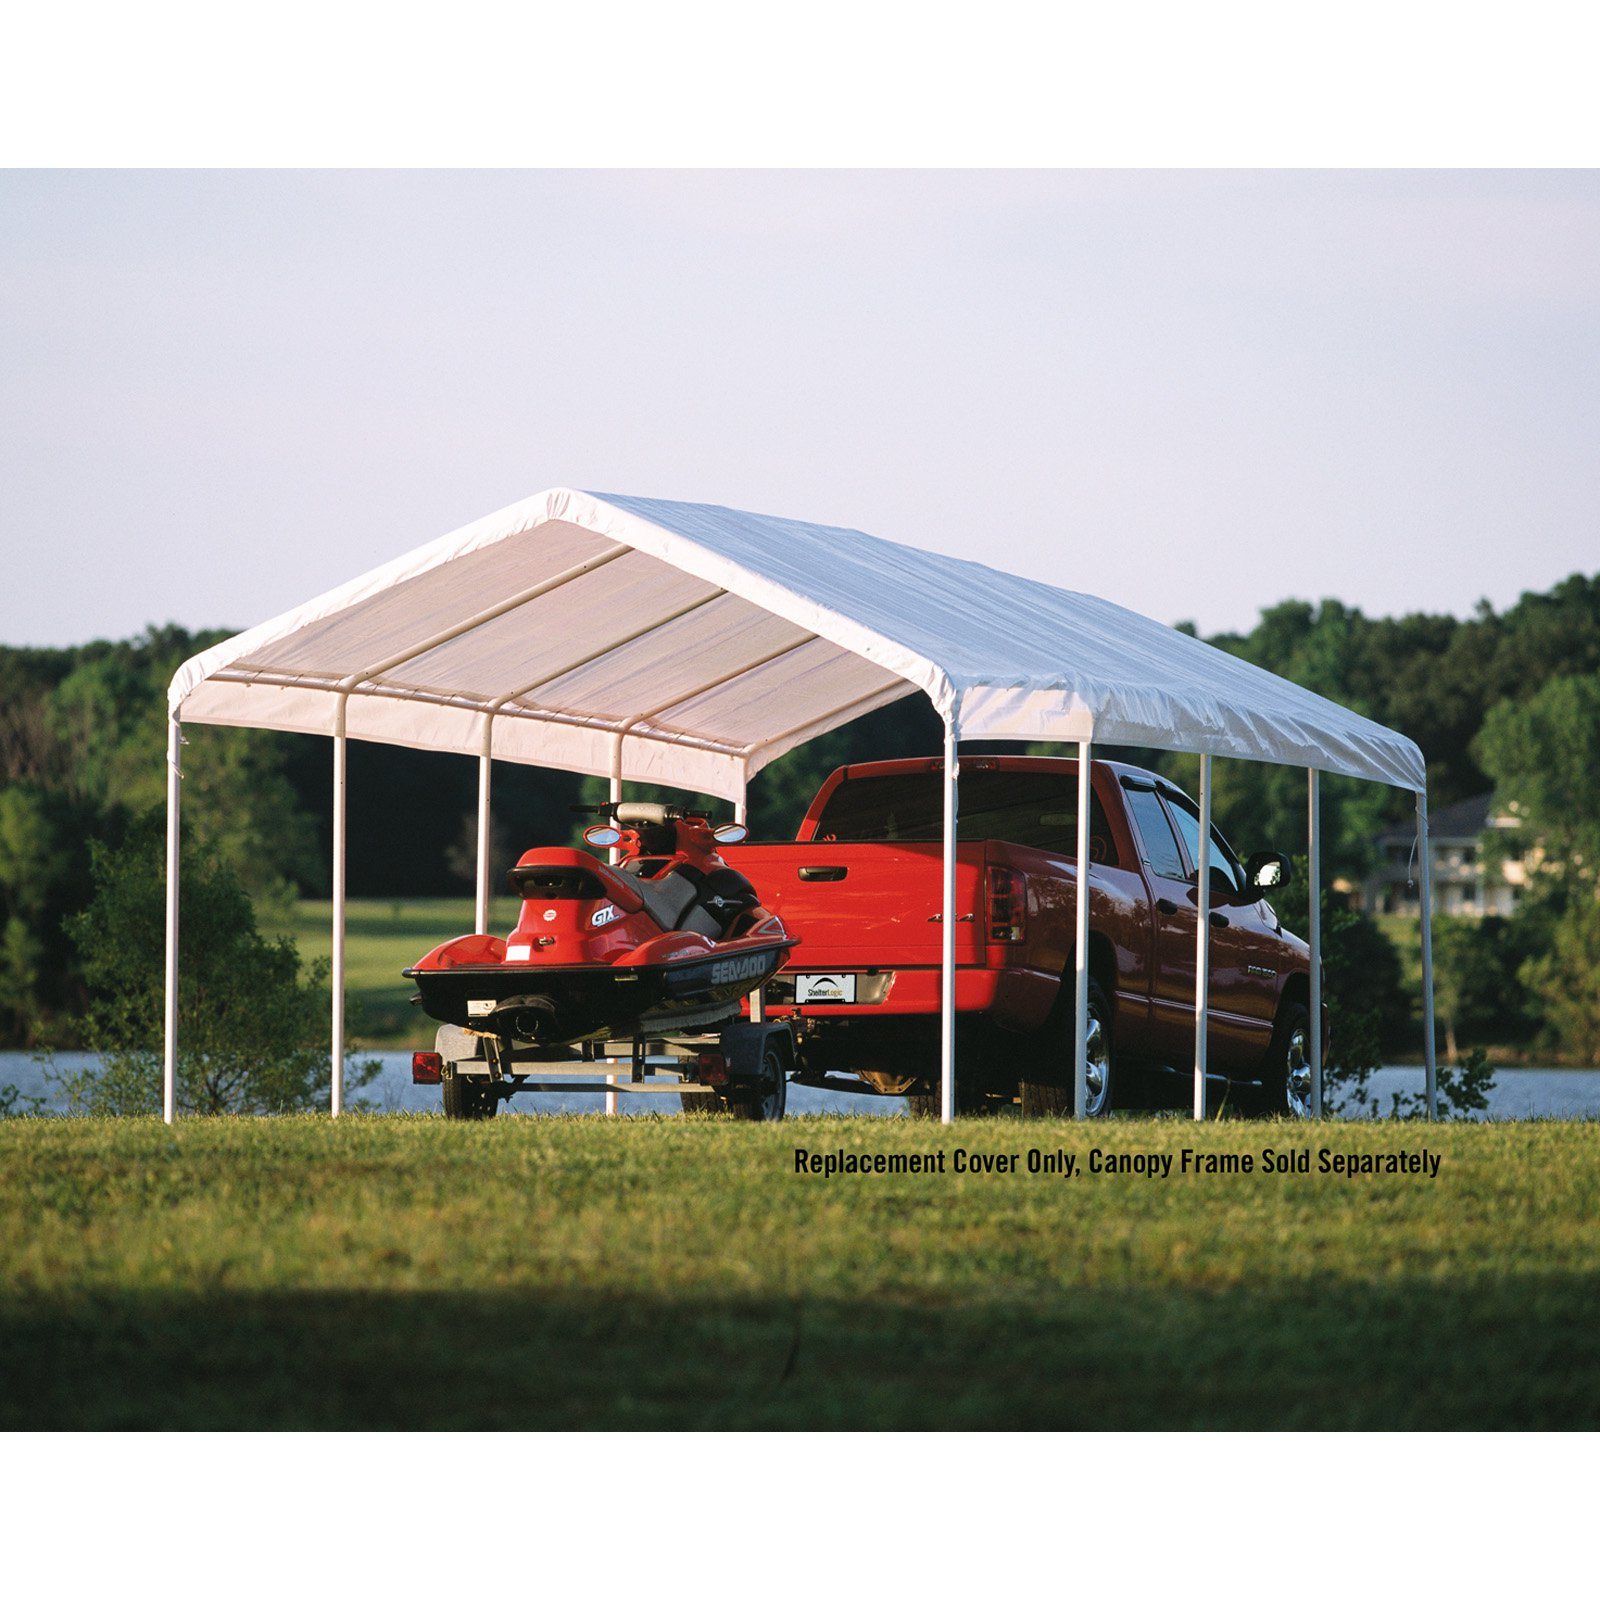 ShelterLogic 12 x 26 ft. Canopy Replacement Cover for 2 in. Frame  sc 1 st  Walmart : shelter logic canopy parts - memphite.com